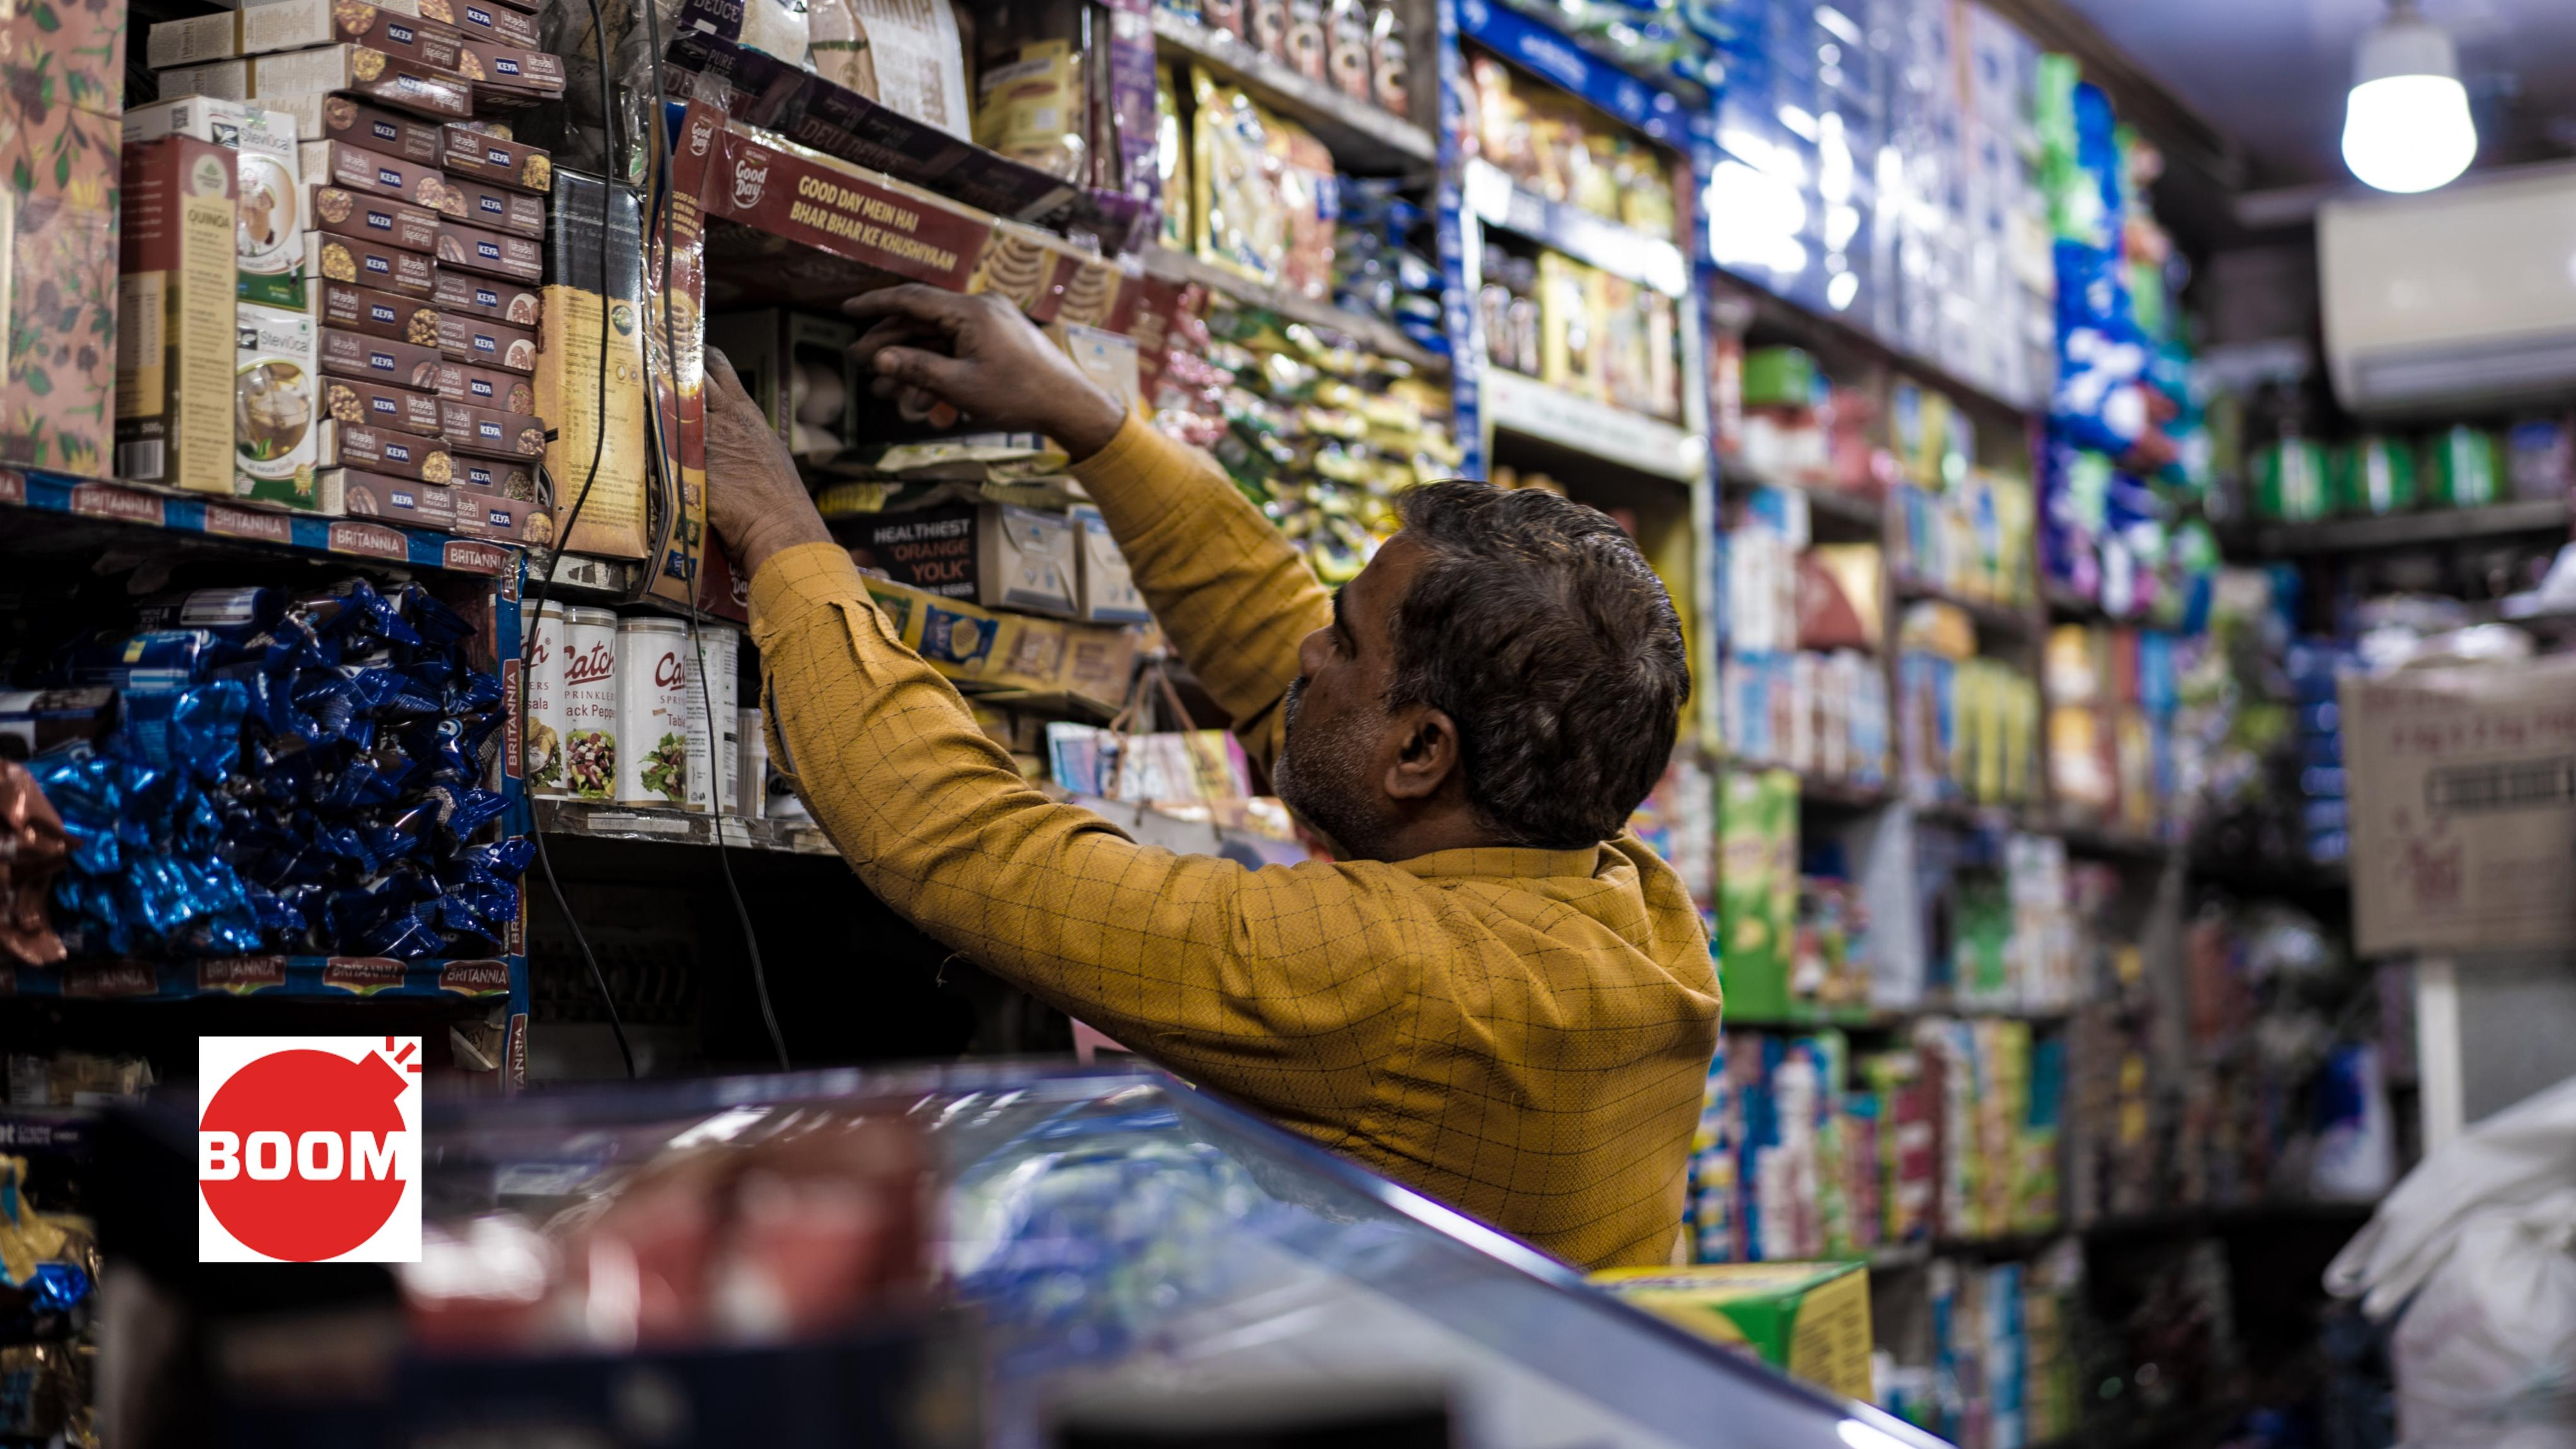 Price rise: Why is inflation rising in India?   BOOM